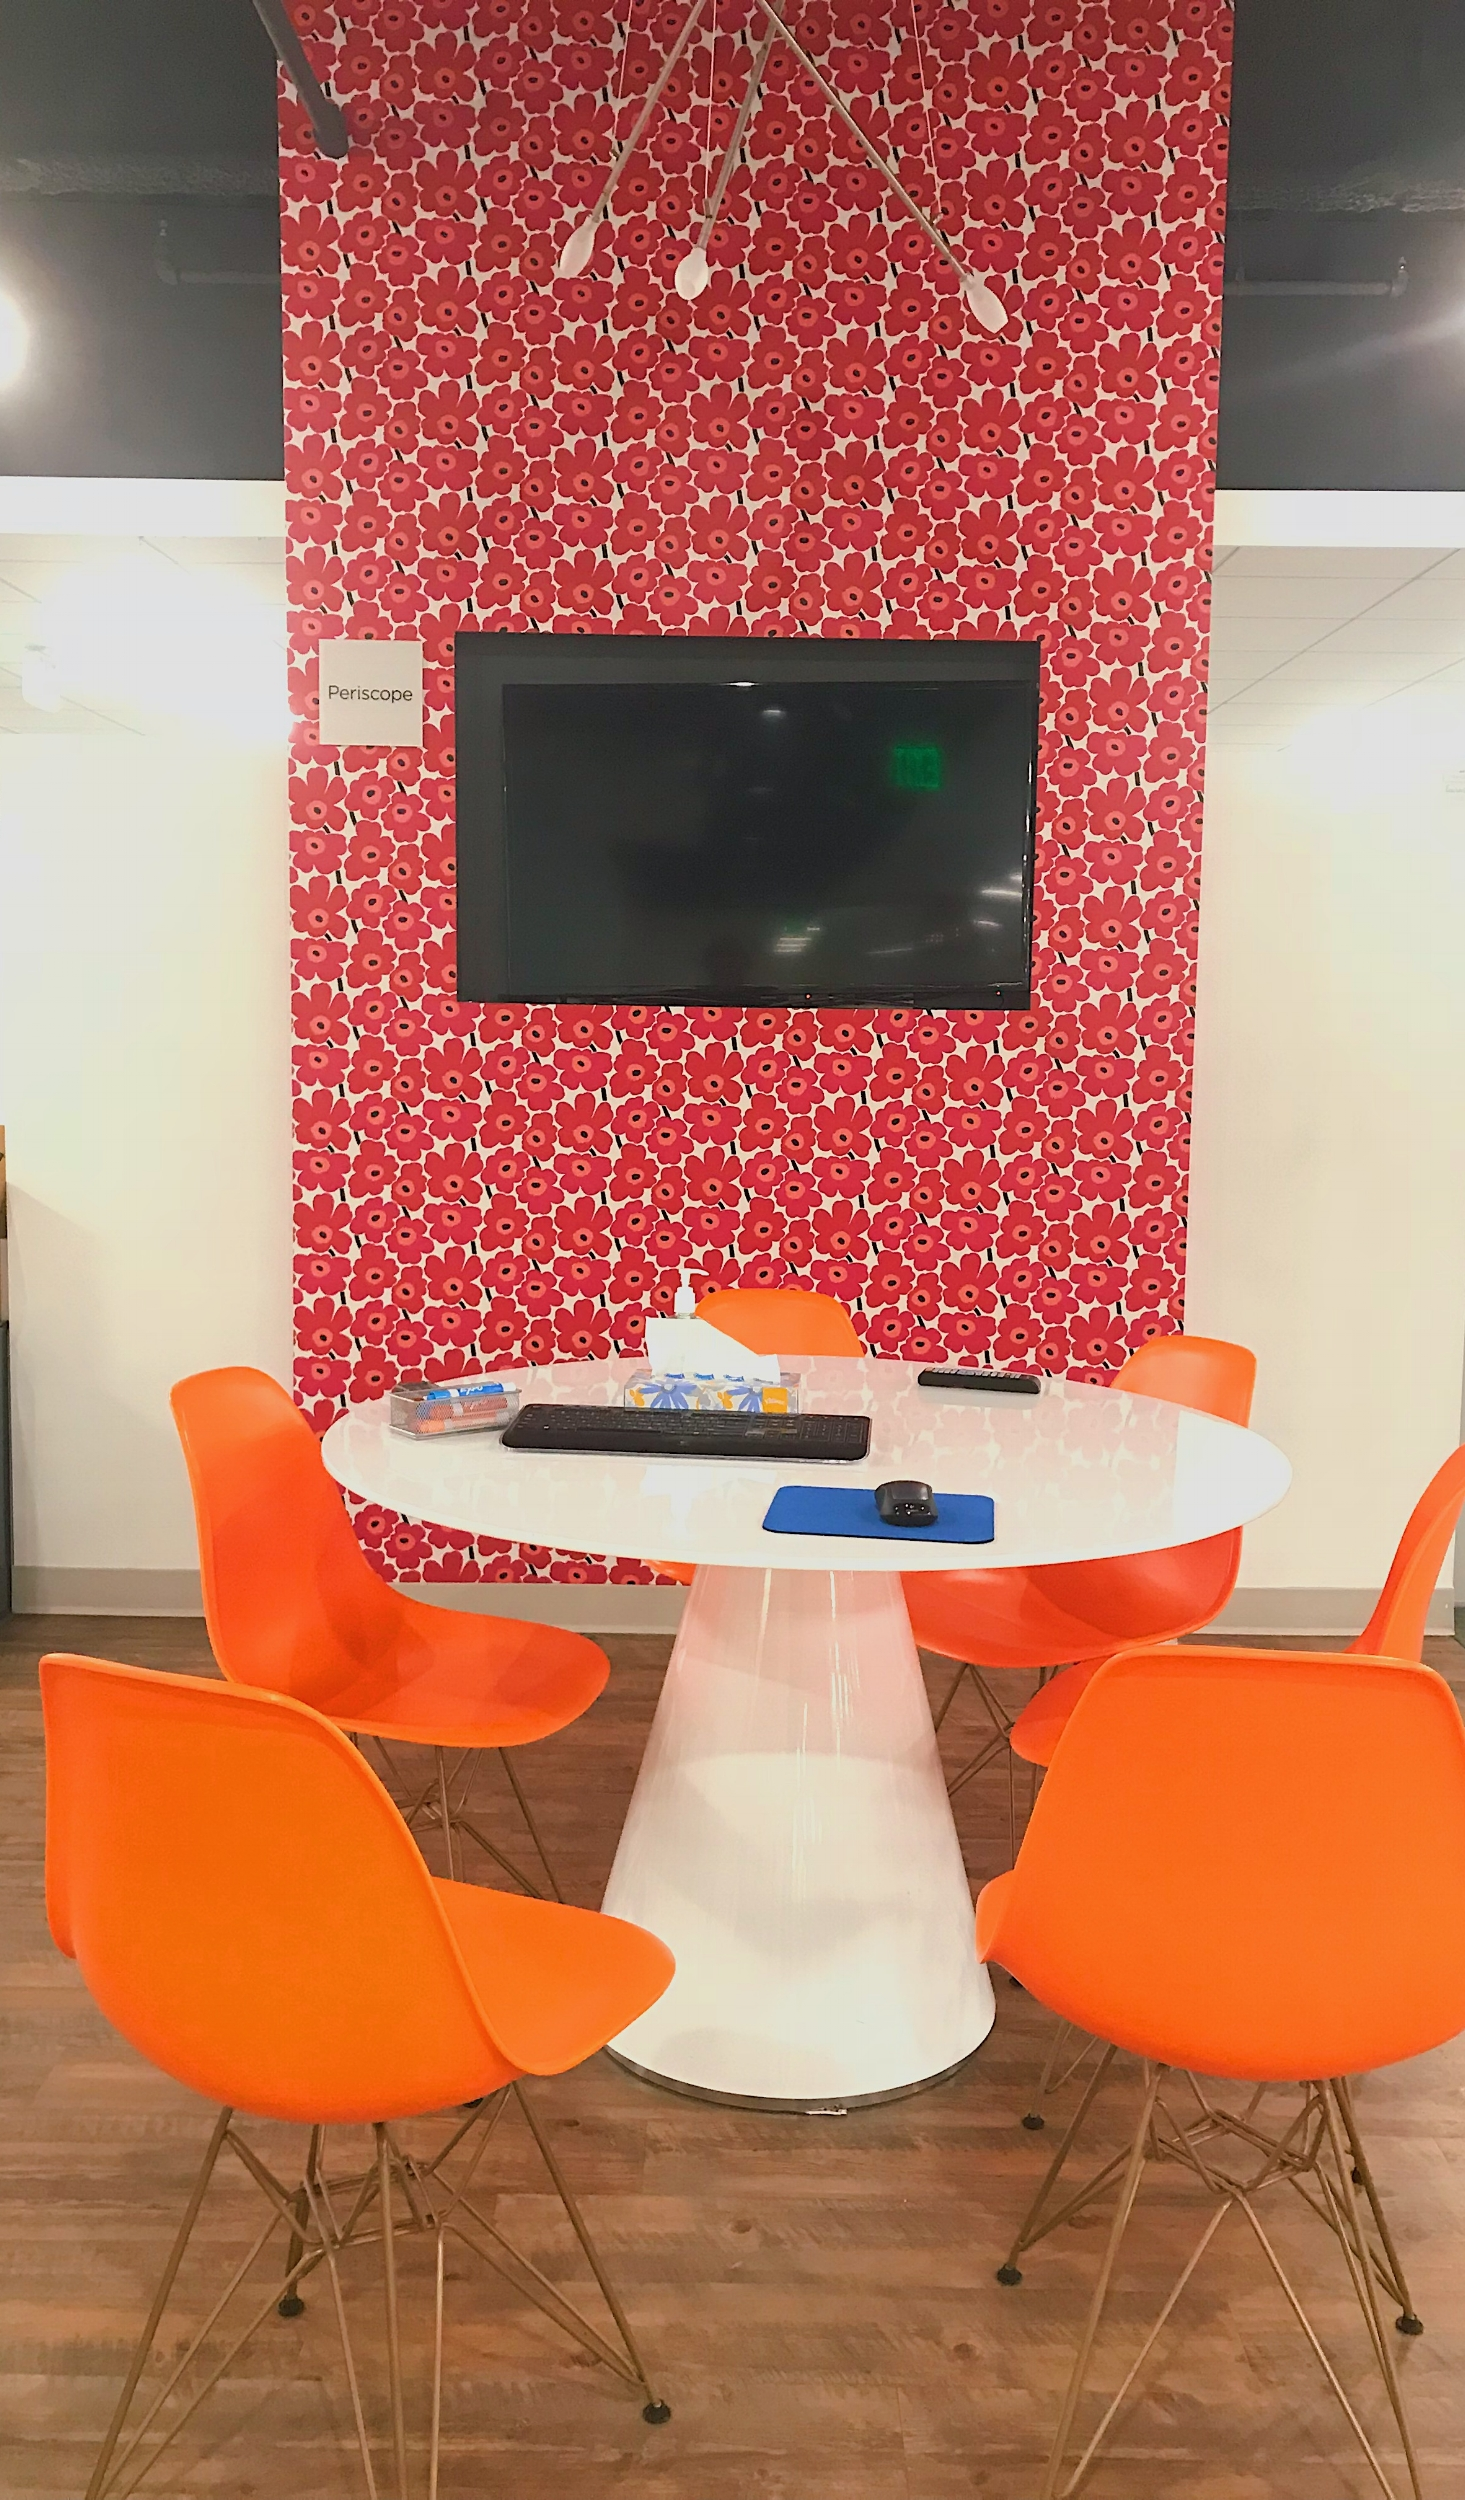 I even loved this office. You know you have a great seat when there's a Marimekko wall you get to look at ;).